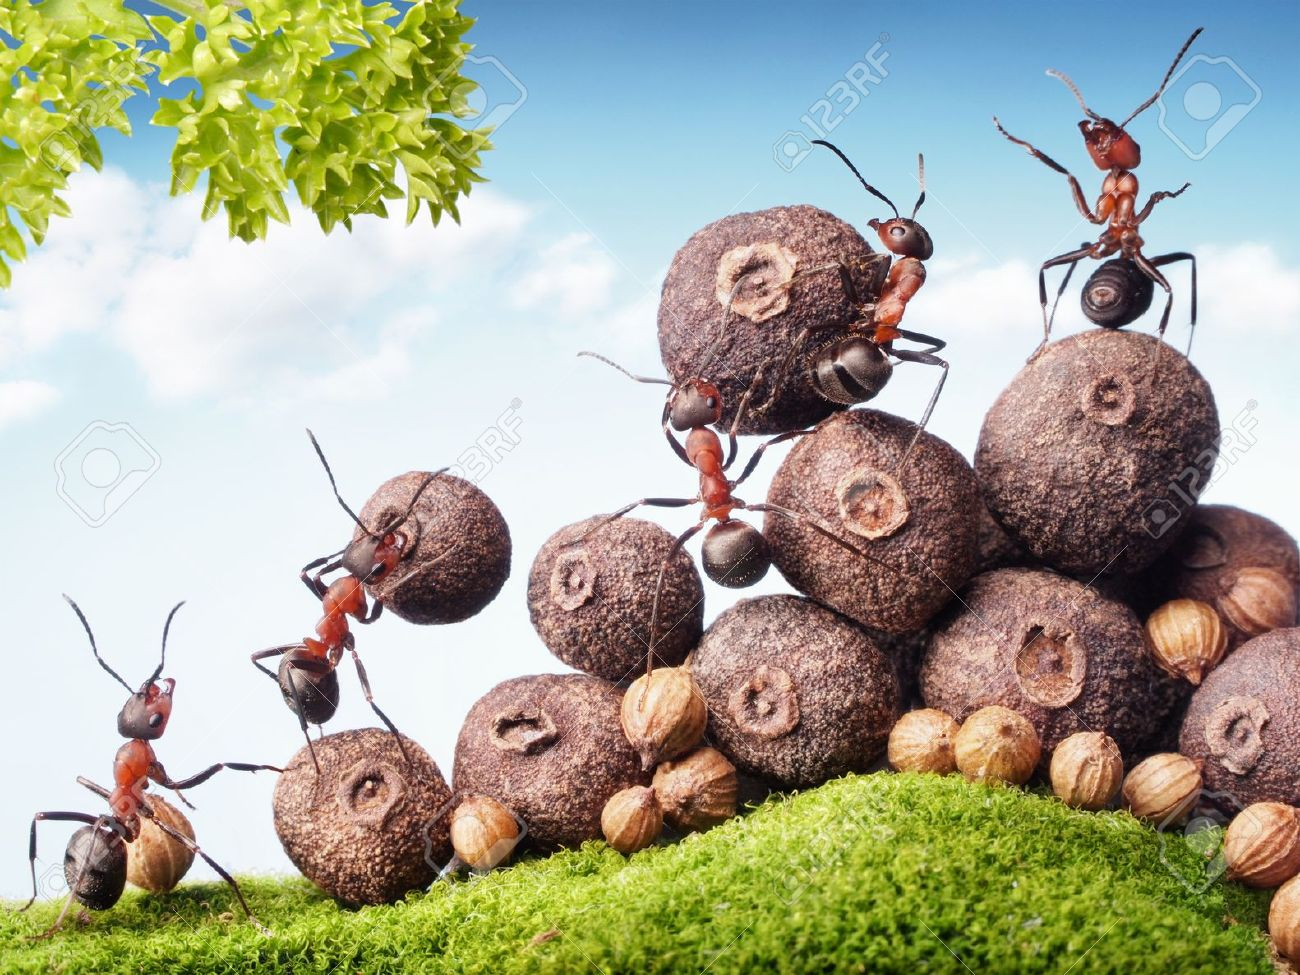 Ants Teamwork Images & Stock Pictures. Royalty Free Ants Teamwork.